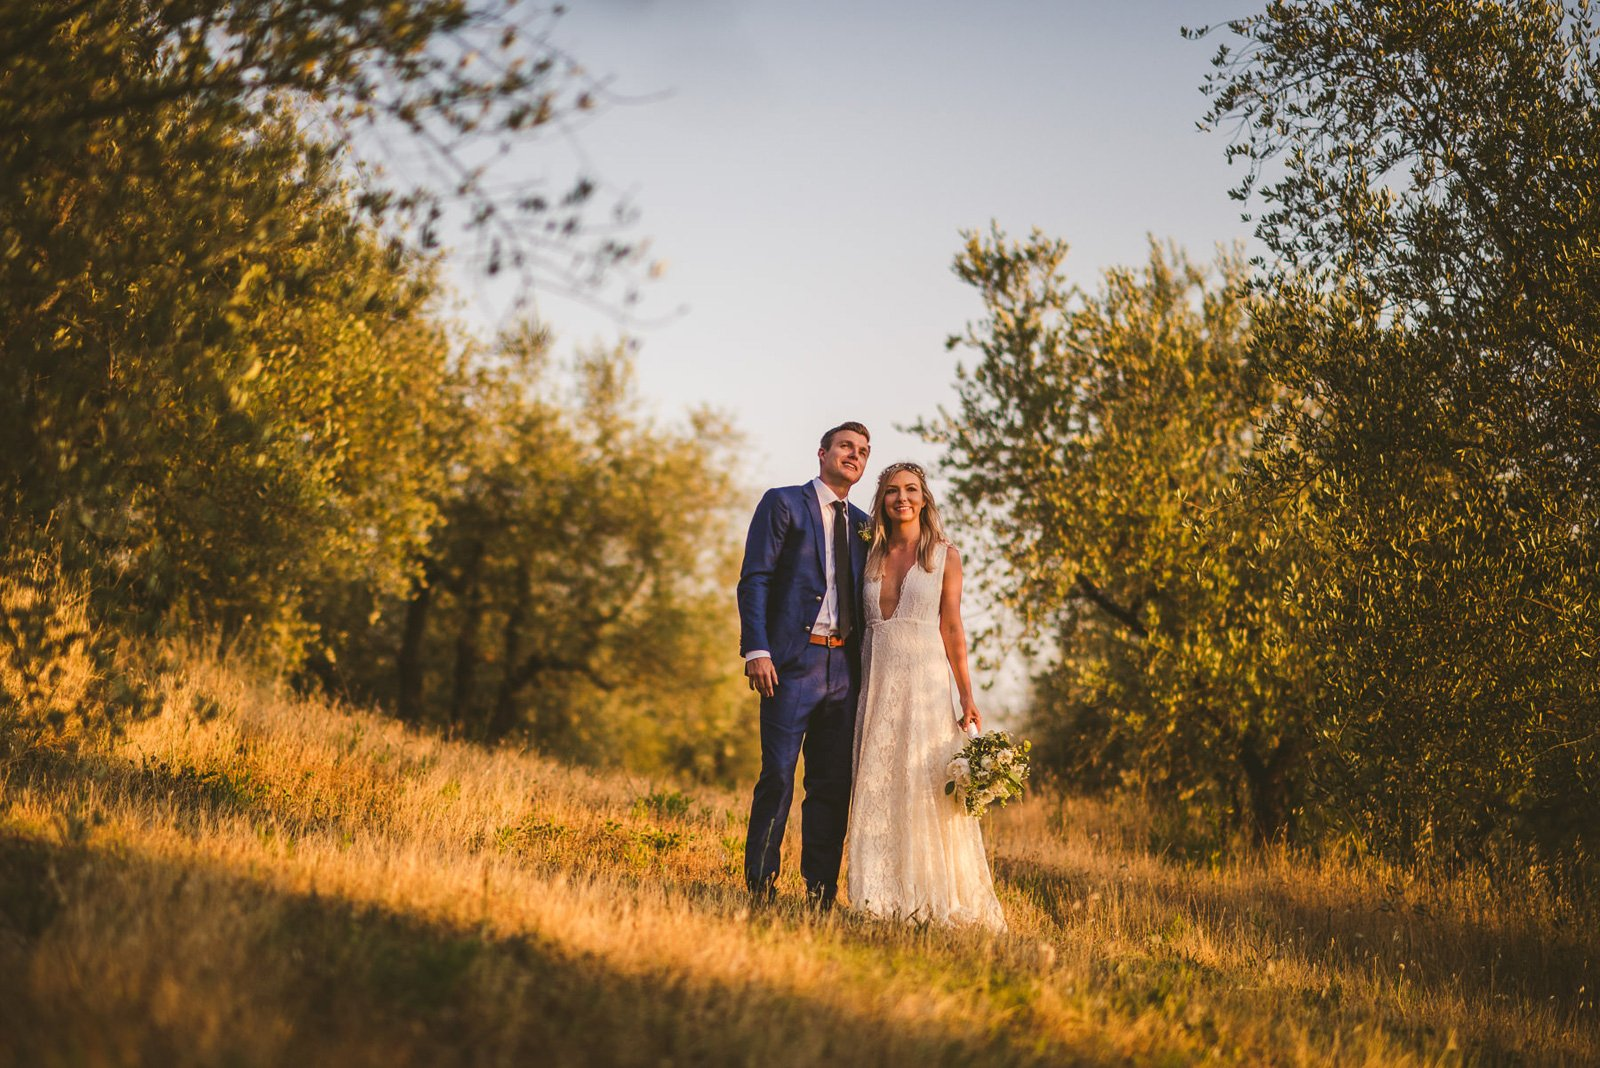 A+L Wedding at Montechiaro, Siena by Federico Pannacci 91